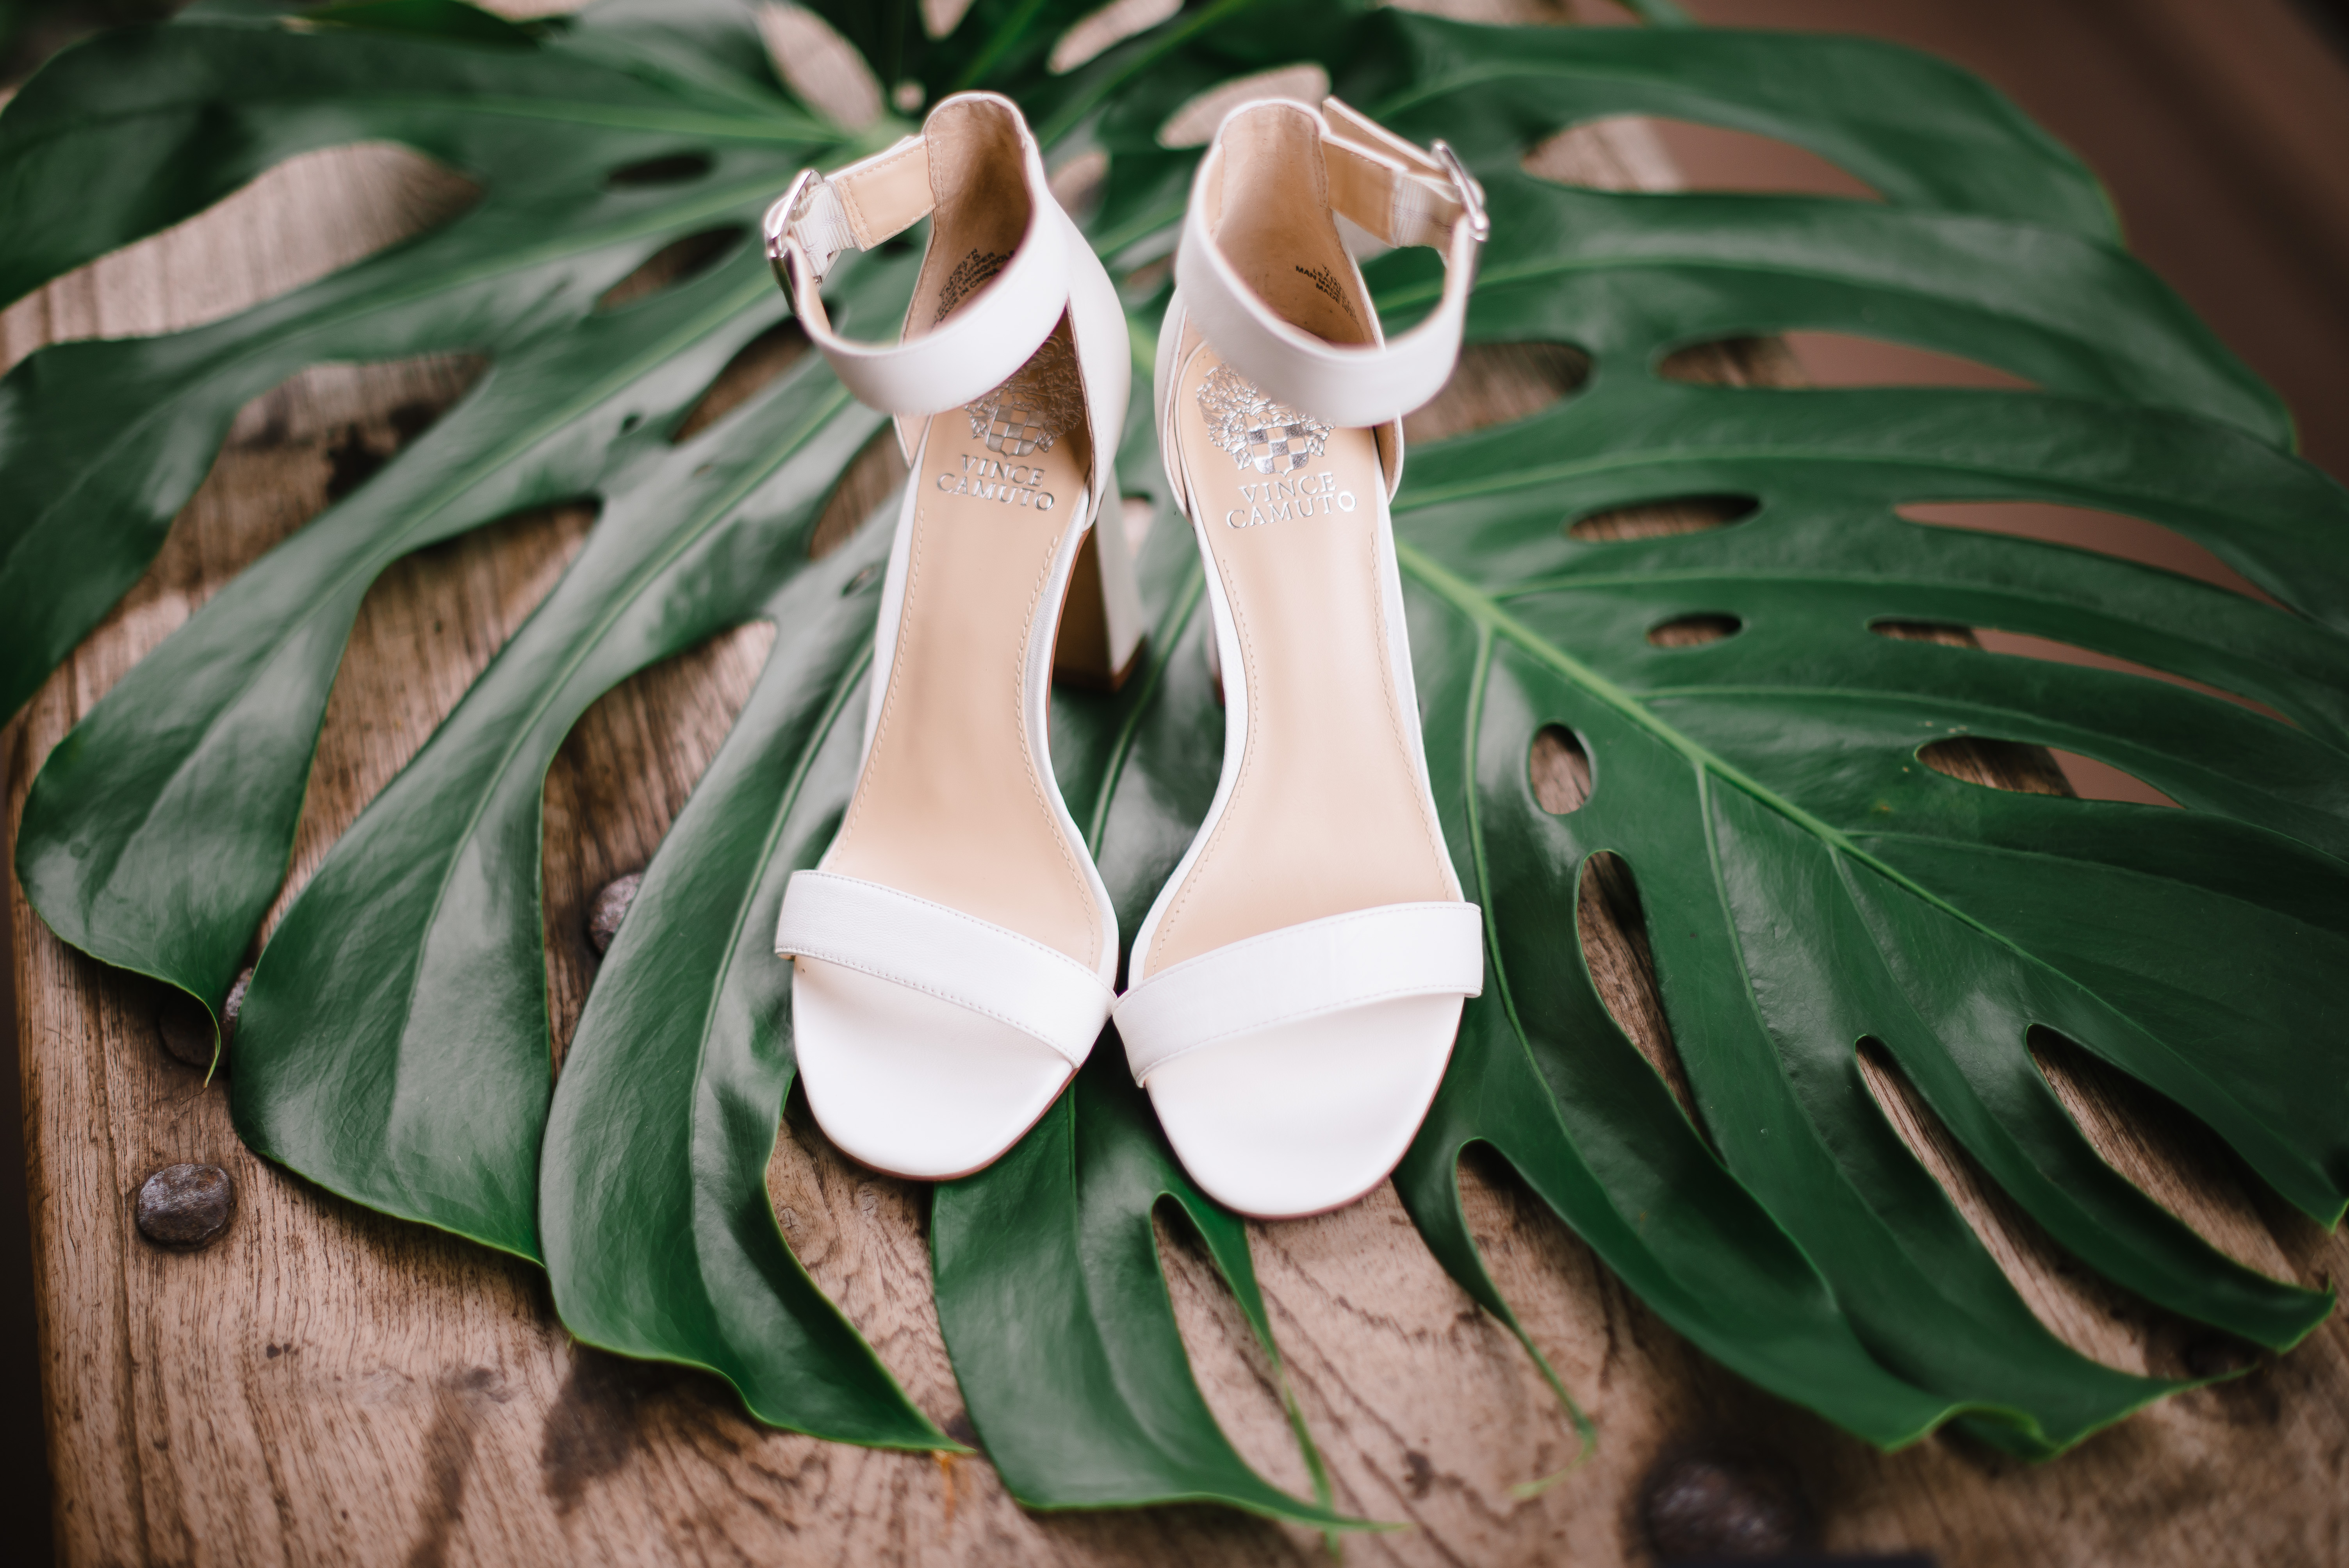 Bride's wedding shoes on Hawaiian palm leaf